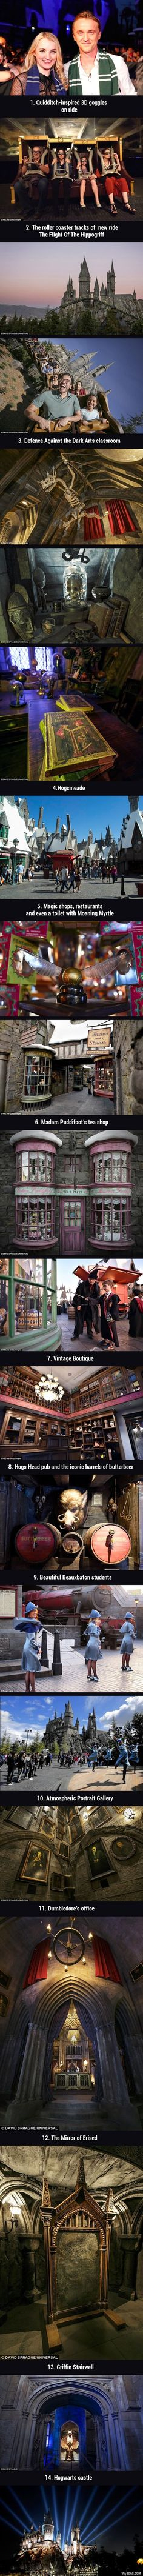 First Look At The Wizarding World of Harry Potter At Los Angeles - 9GAG by ofelia